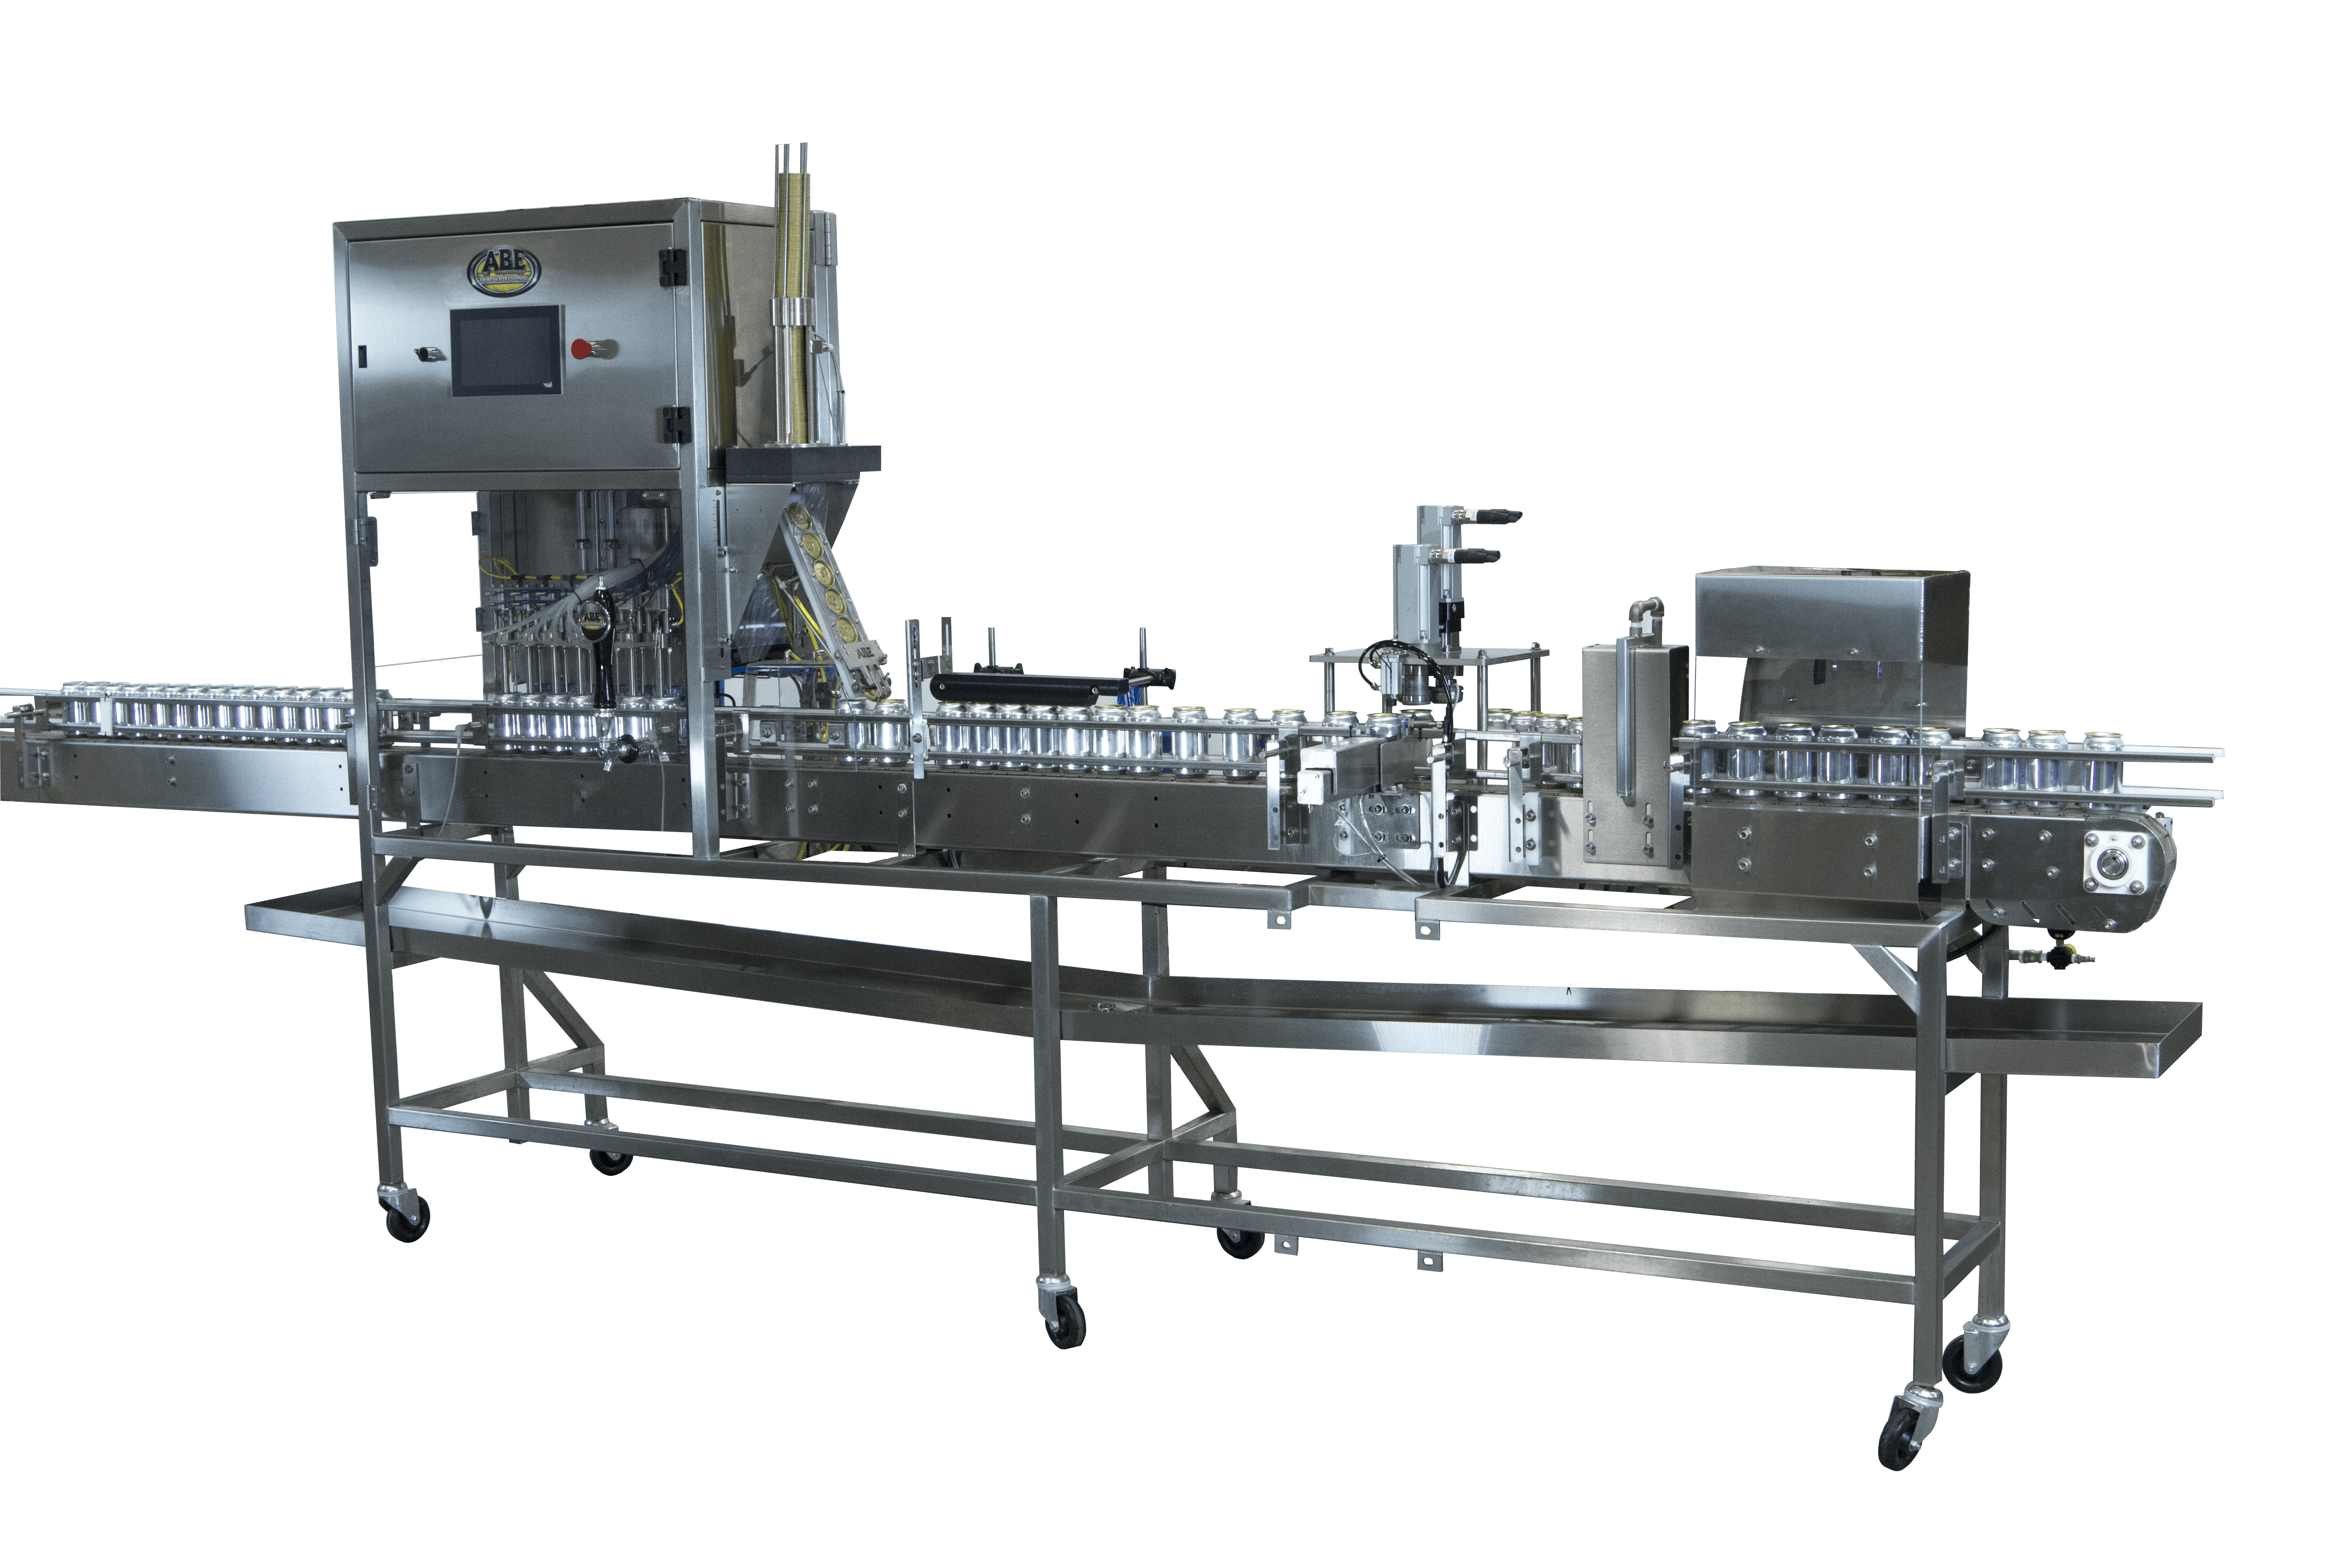 LinCan65 - A.B.E.'s LinCan 18, 35 & 65 - sold by American Beer Equipment